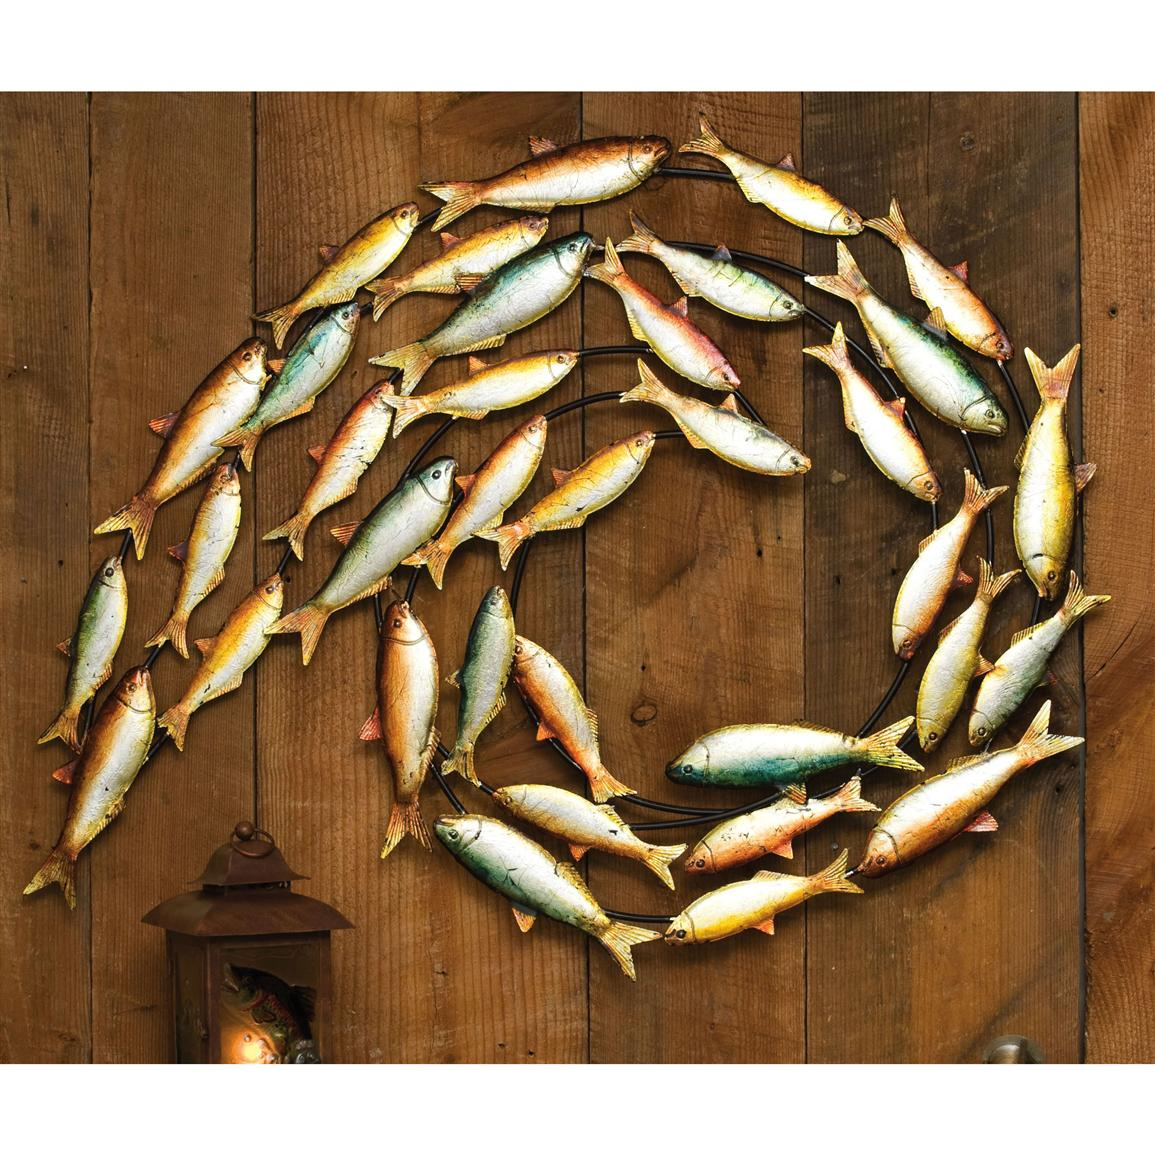 Metal fish wall decor 200141 wall art at sportsman 39 s guide for Fisherman home decor